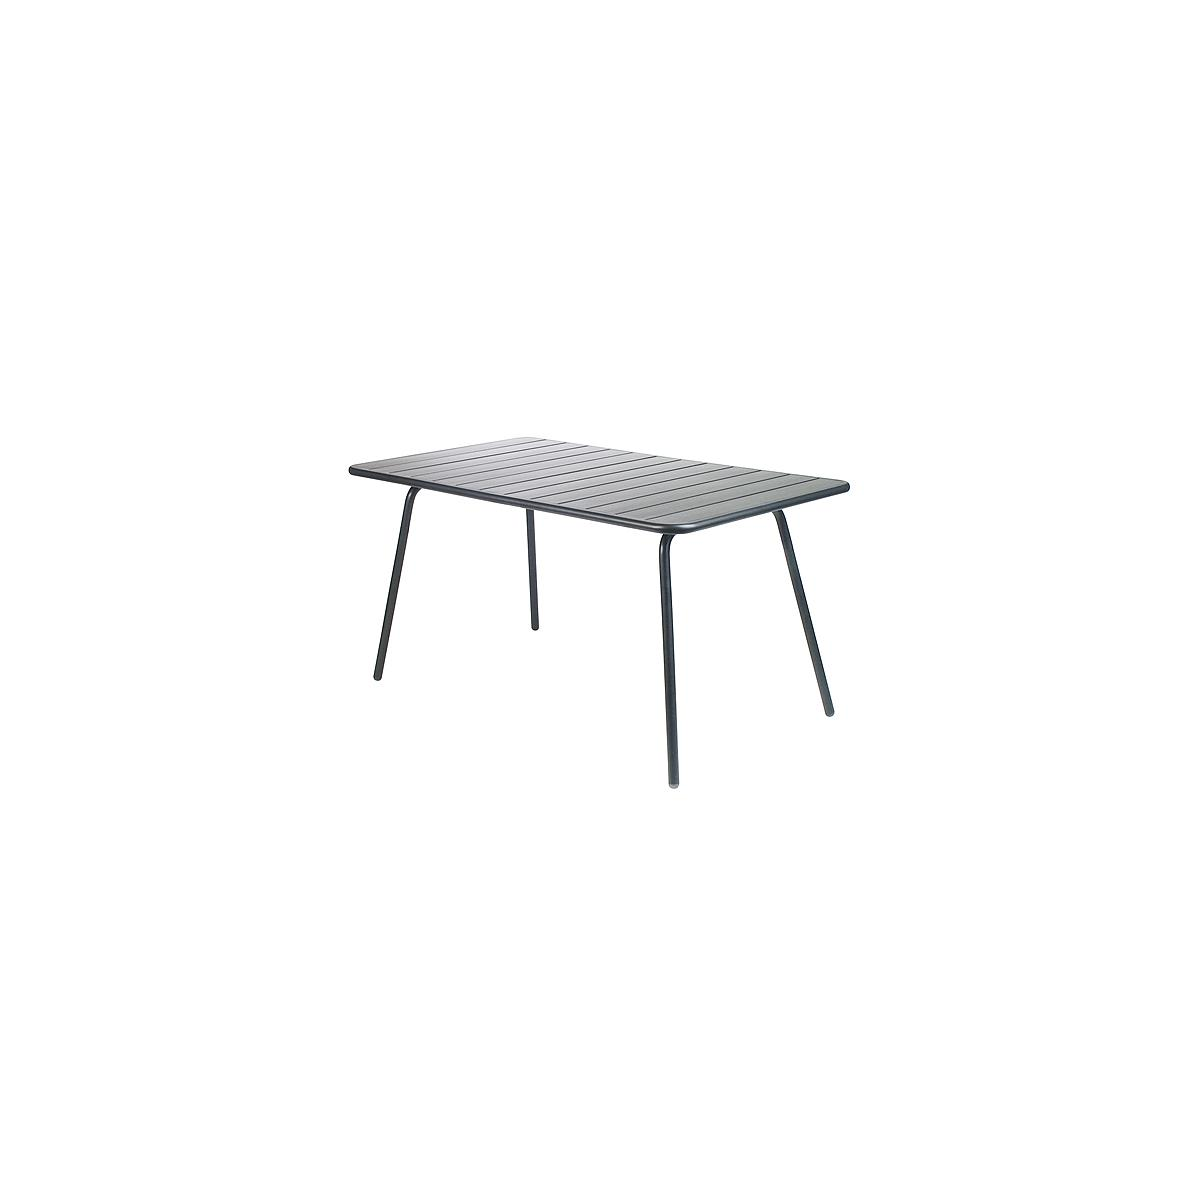 LUXEMBOURG by Fermob Table 143x80 cm Carbone